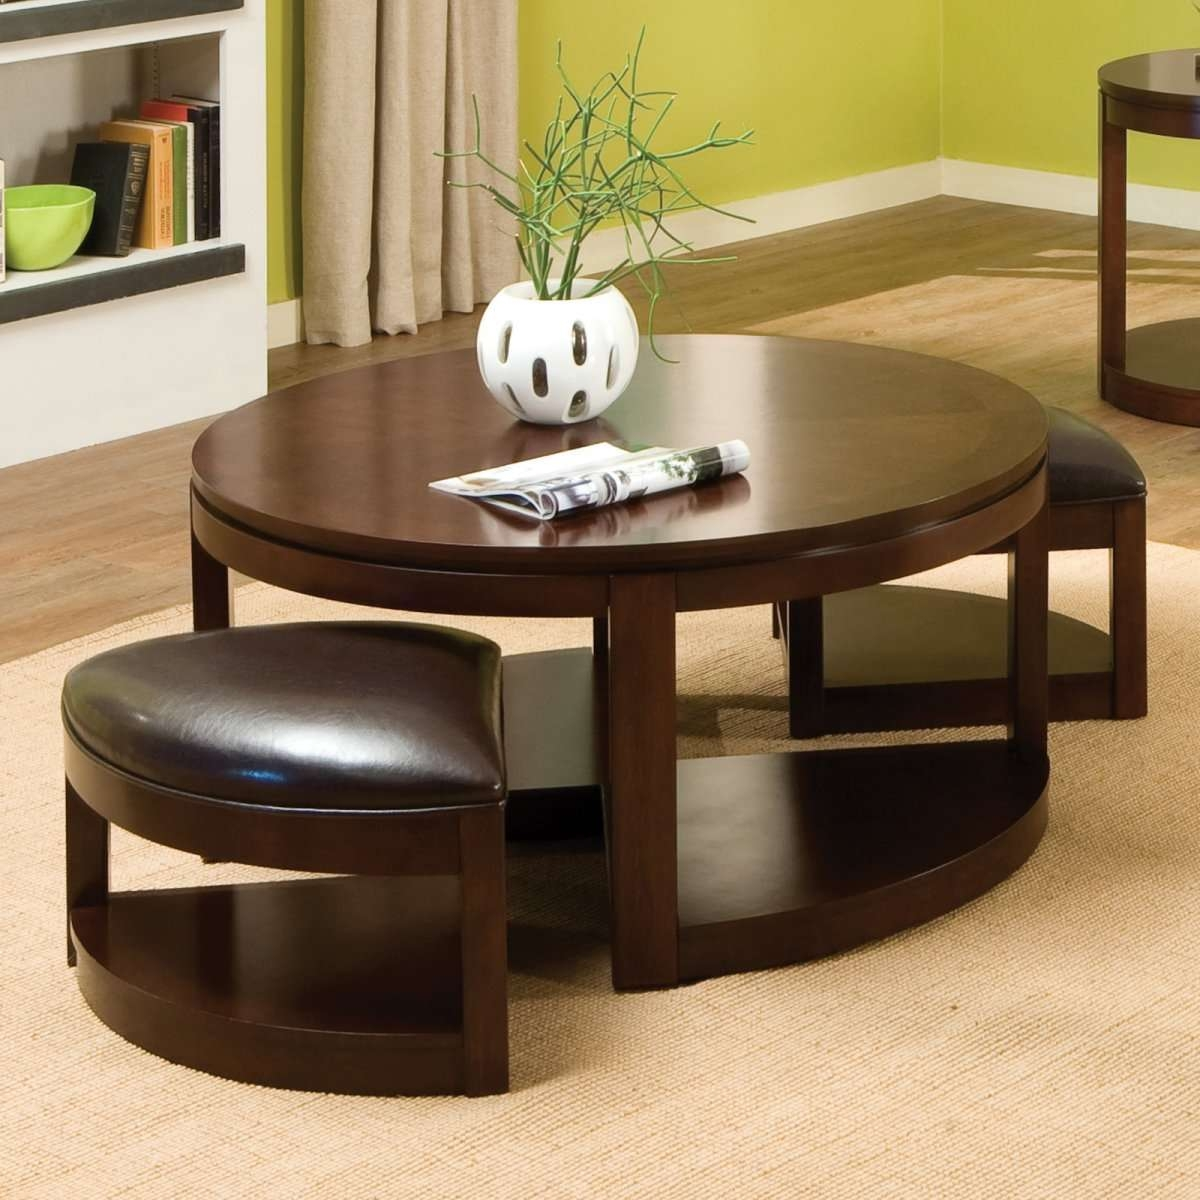 Trendy Coffee Table With Stools In Coffee Table, Coffee Tables With Stools Within Coffee Tables With (View 18 of 20)